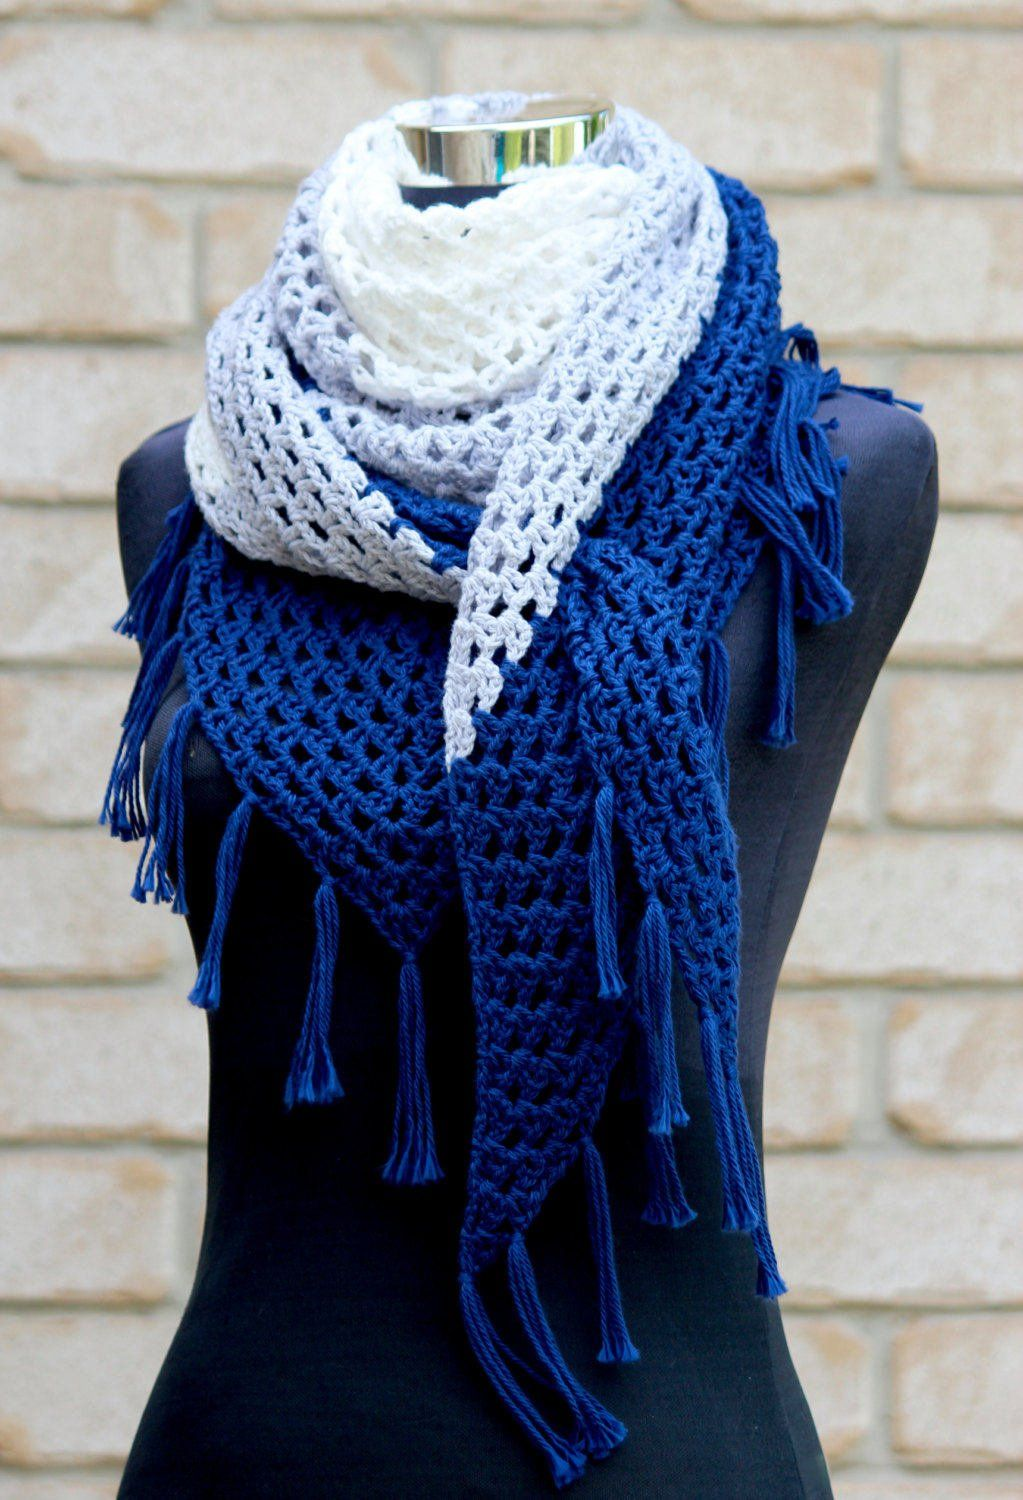 Crochet Pattern UK terms. Almost a Granny Triangle Scarf